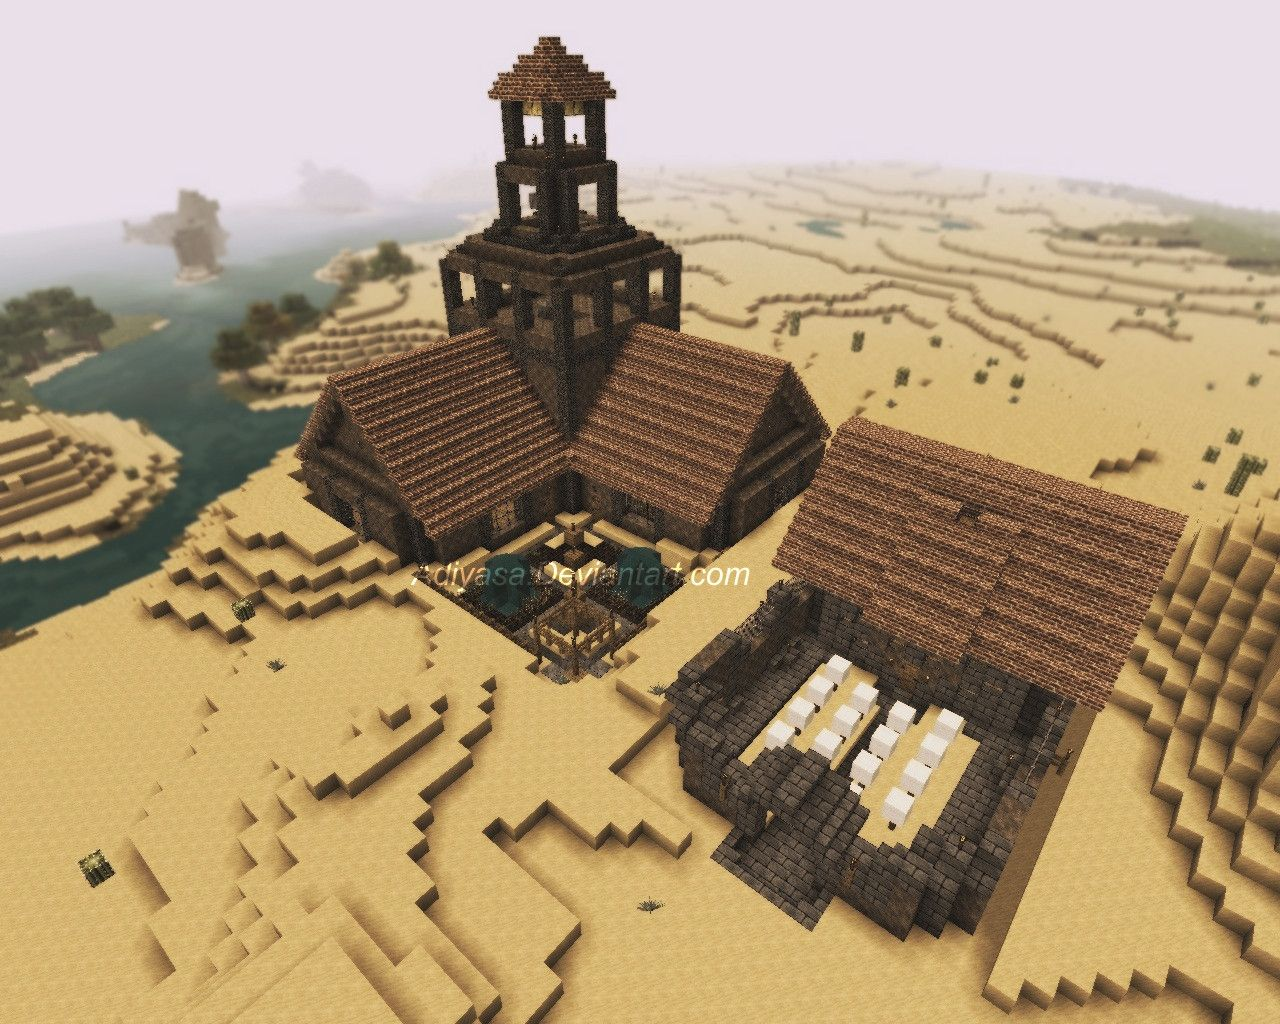 An Age Of Empires Town Center And Barracks Recreated In Minecraft